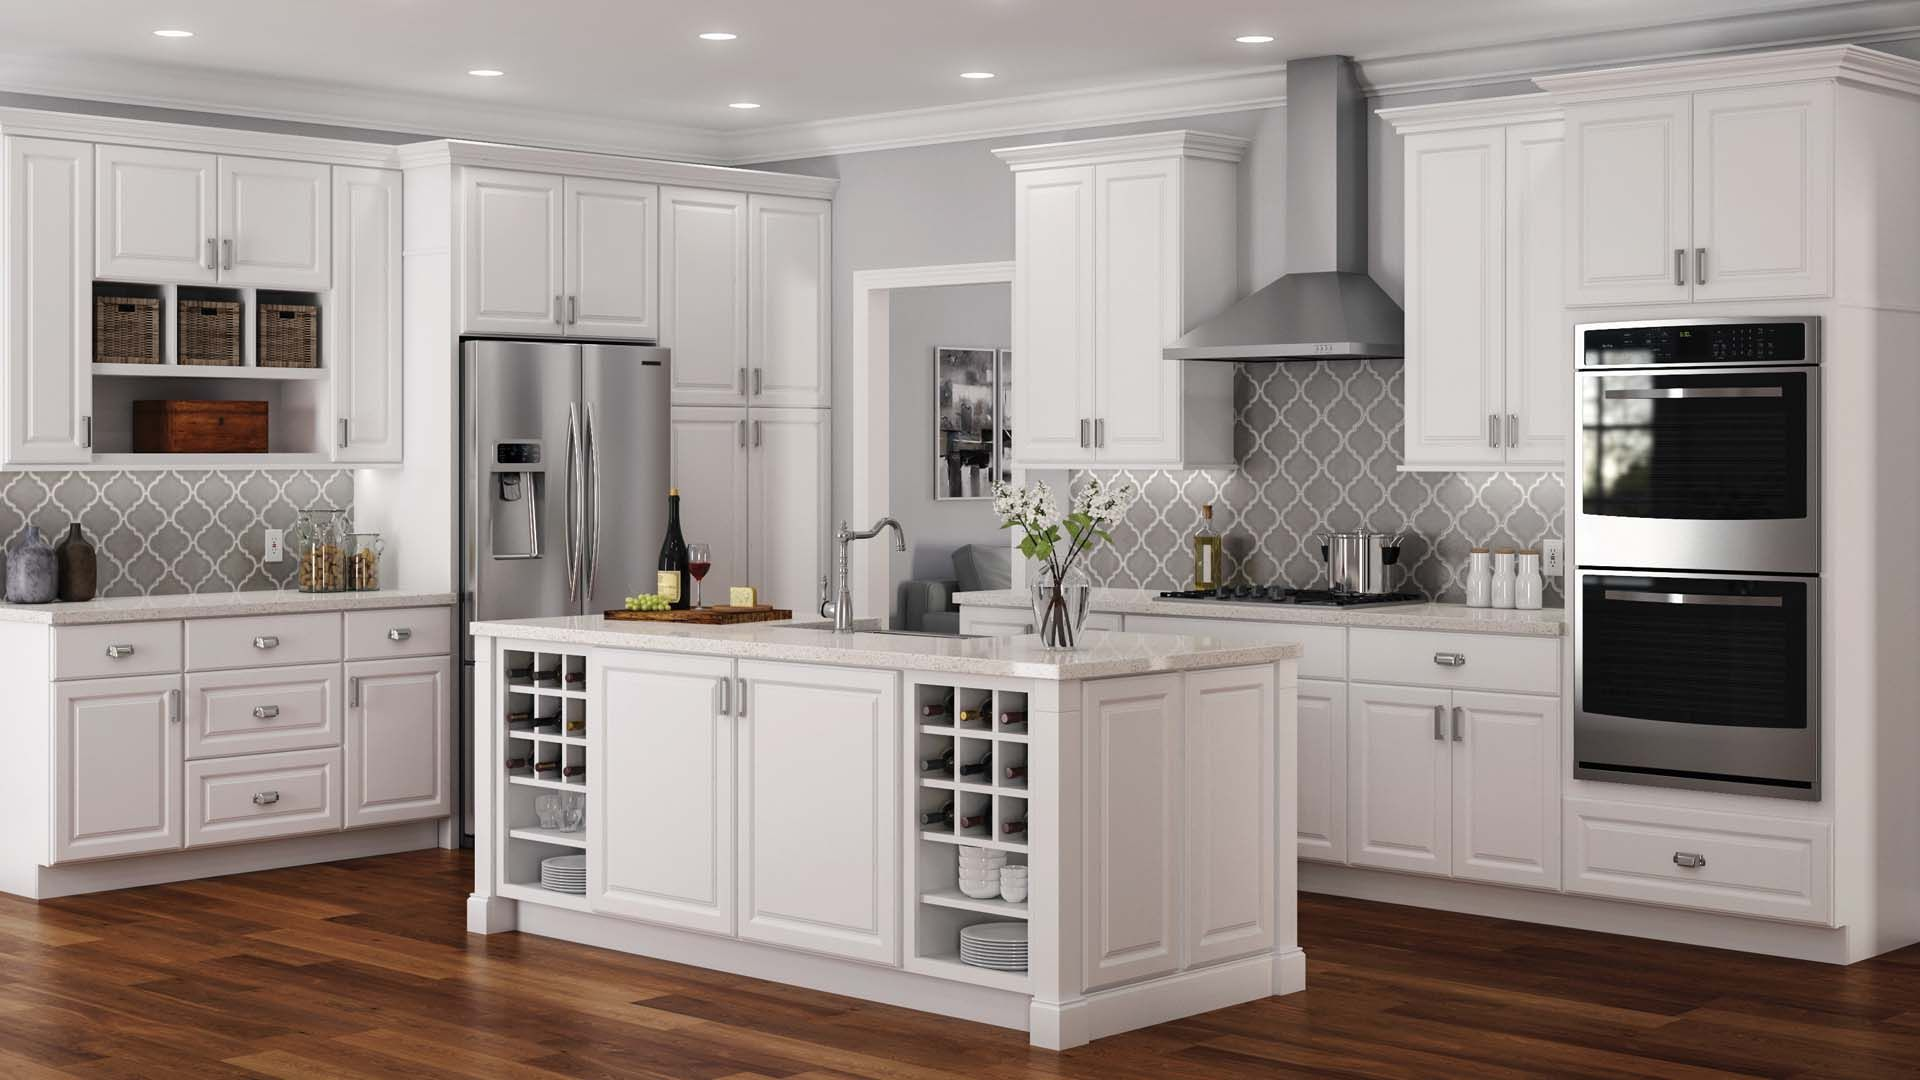 Hampton Wall Cabinets In White Kitchen The Home Depot Kitchen Cabinets Home Depot Home Depot Kitchen Kitchen Design